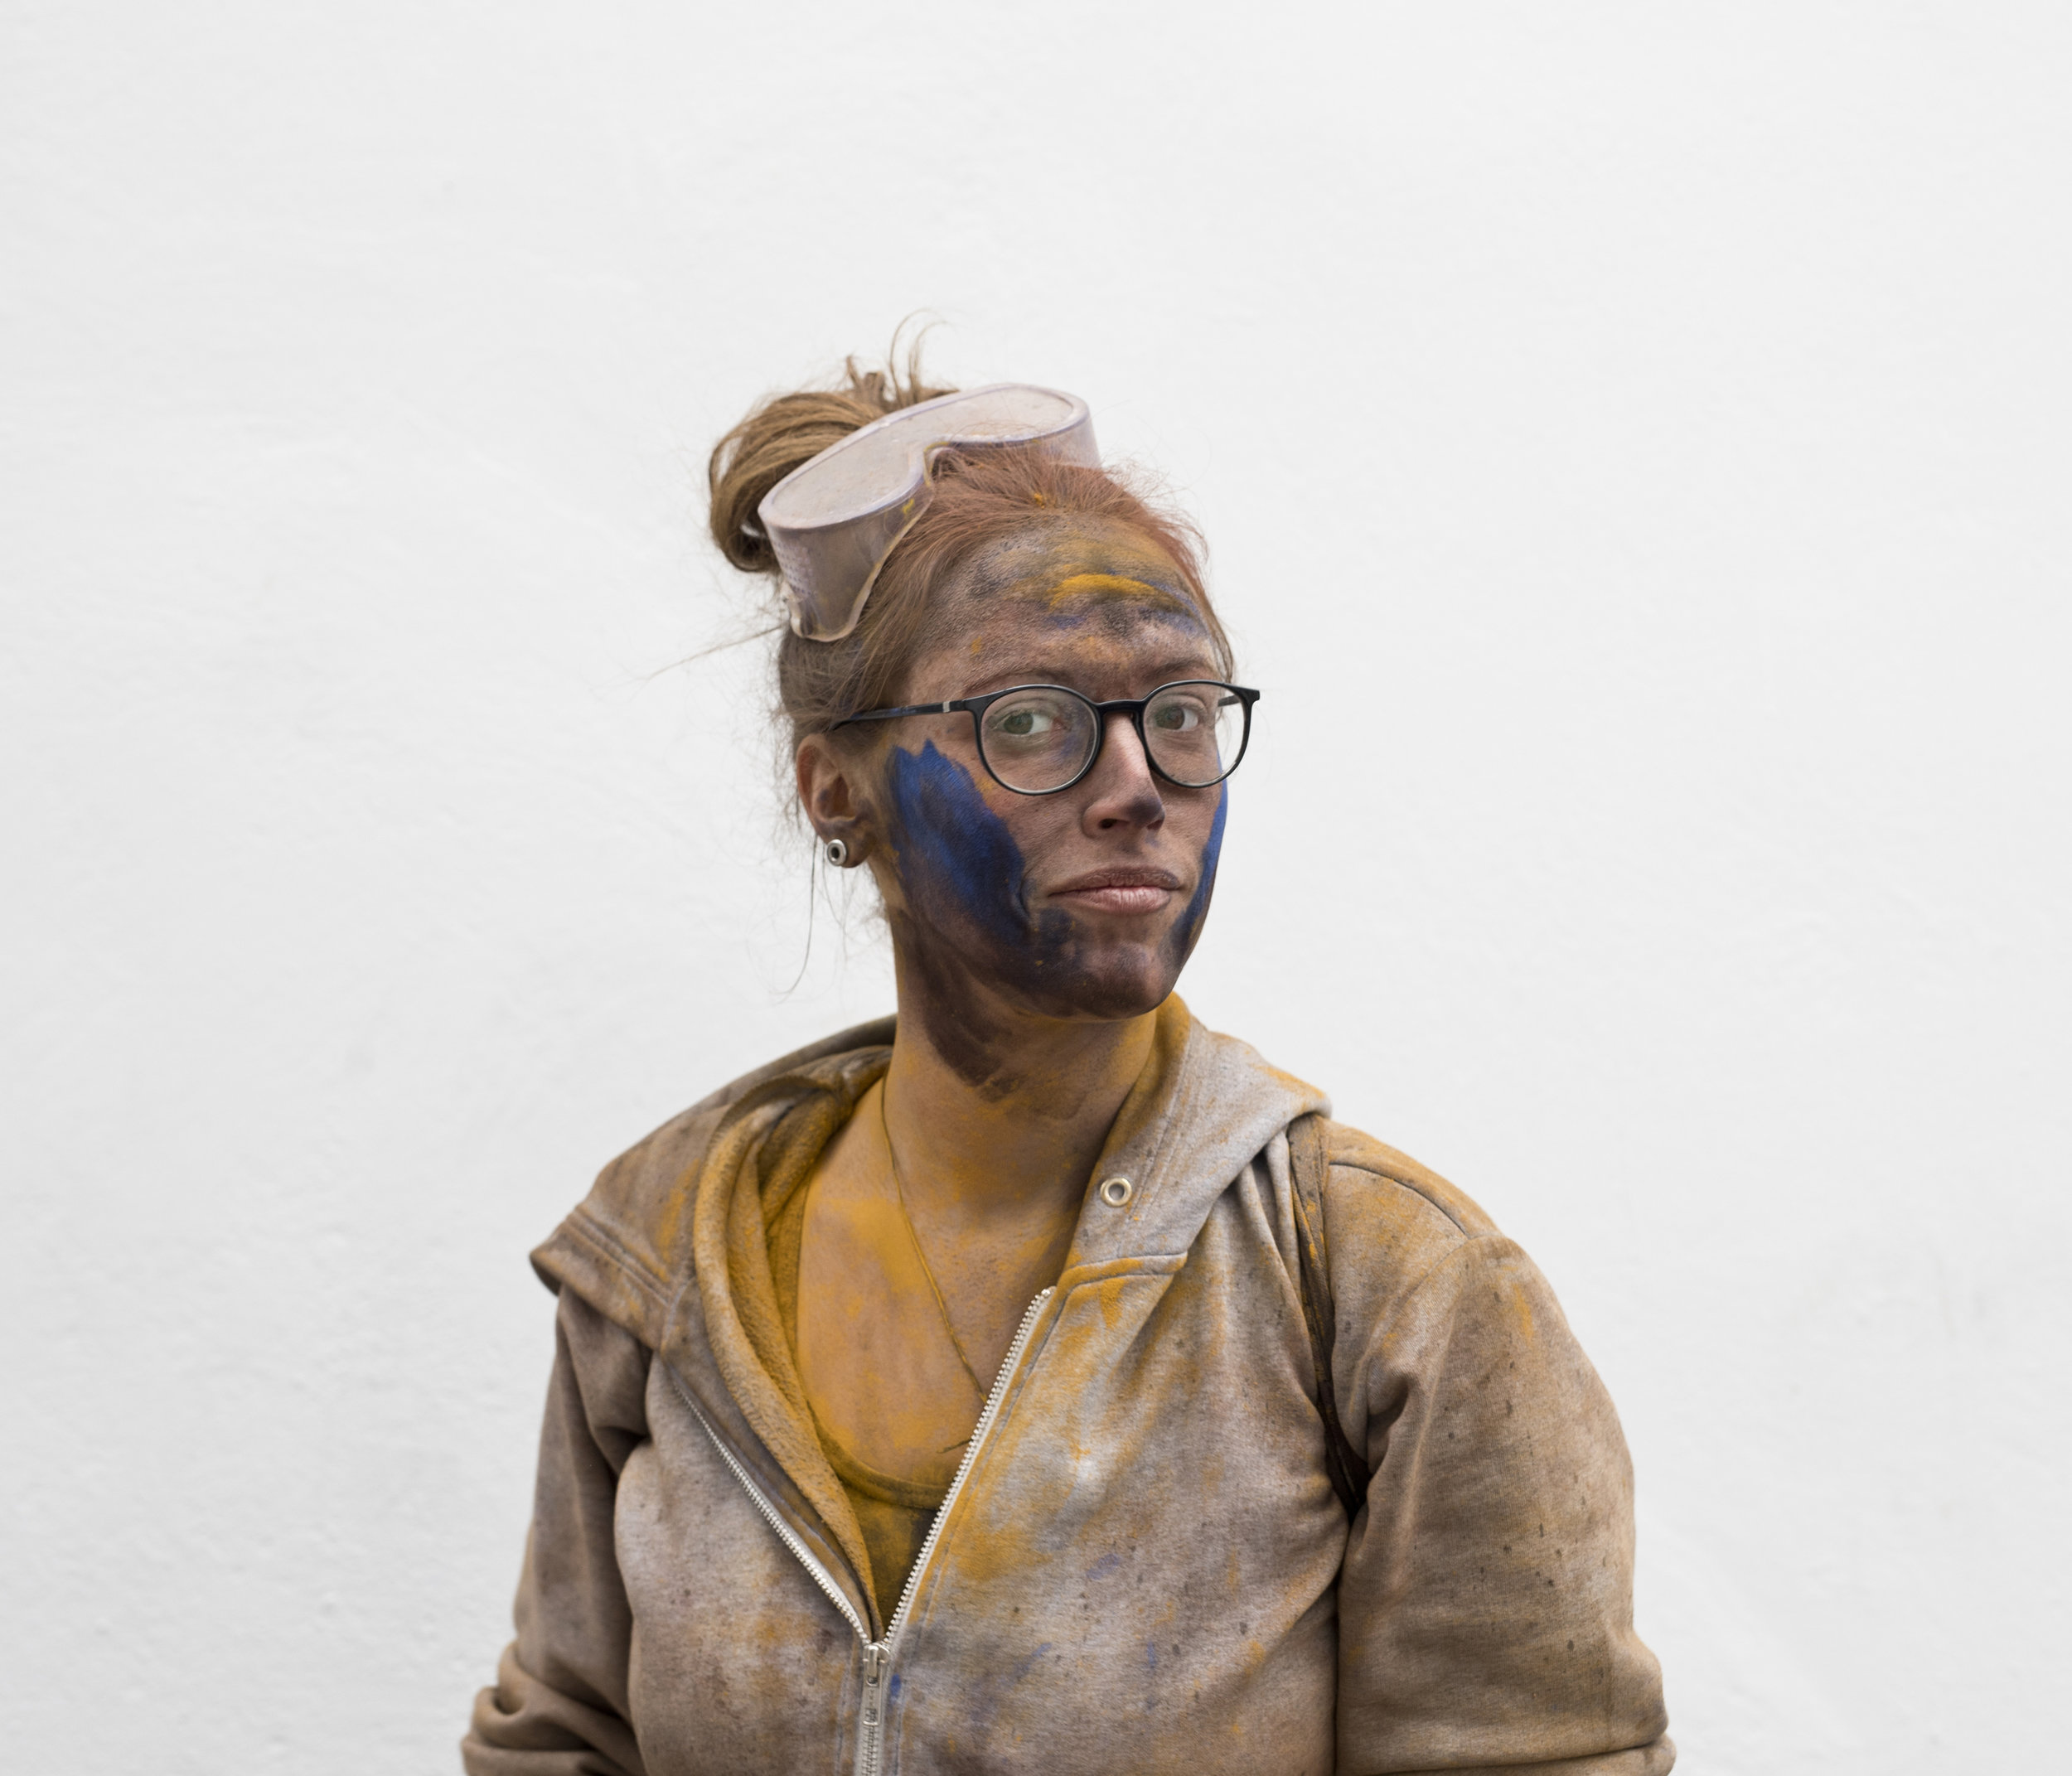 In this Monday, Feb. 19, 2018 photo Claire 24, from France, poses for a portrait as she takes part in the flour war, a unique colorful flour fight marking the end of the carnival season in the port town of Galaxidi, some 200 kilometers (120 miles) west of Athens. (AP Photo/Petros Giannakouris)